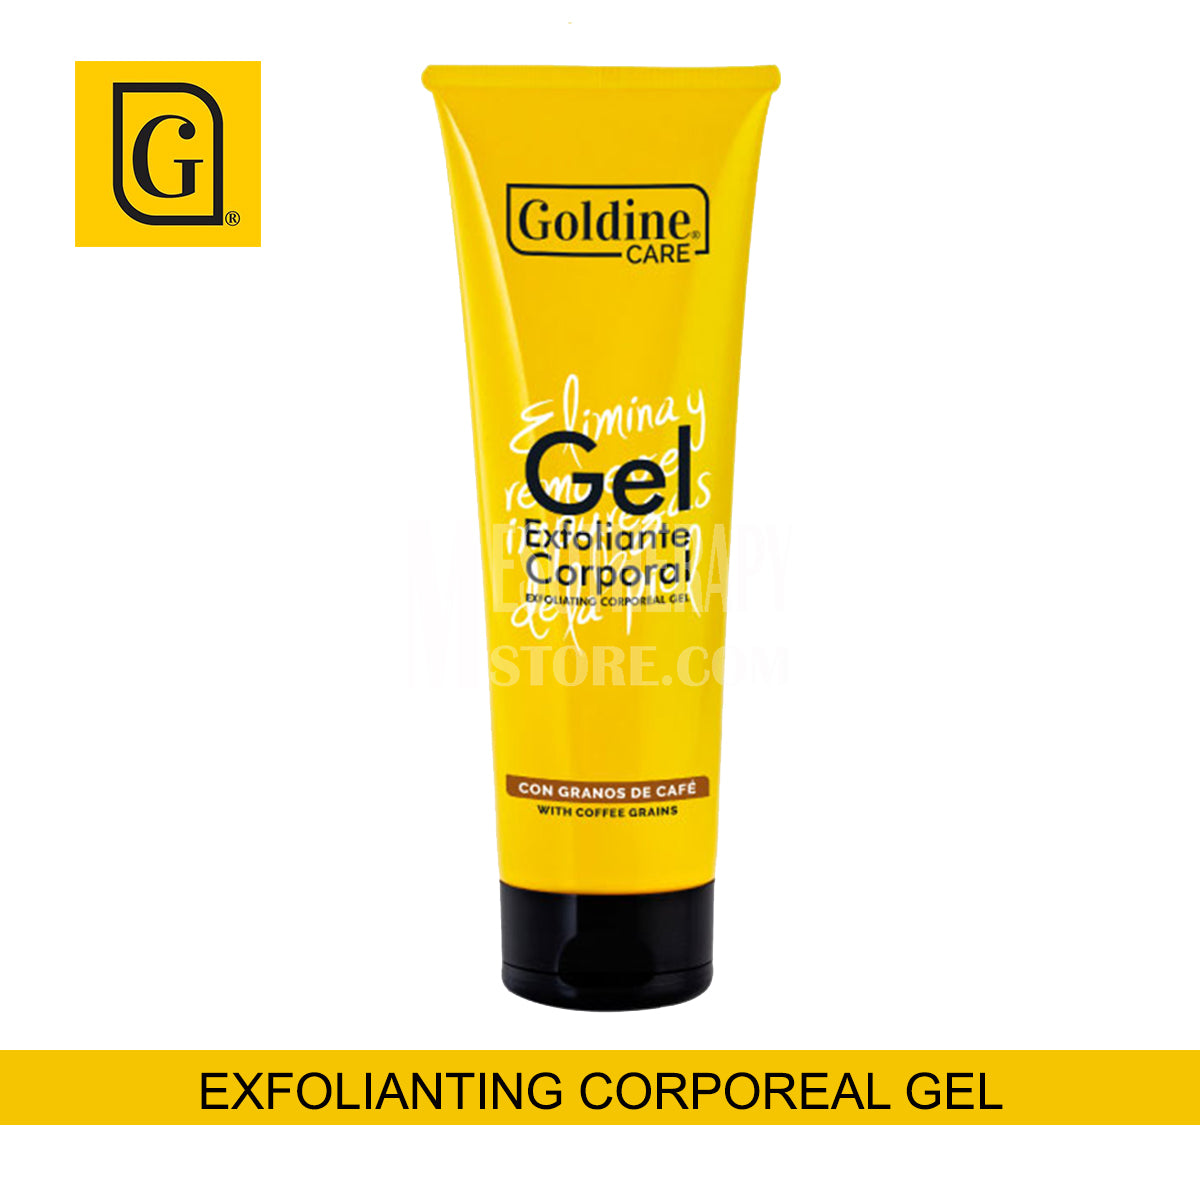 Body Scrub Gel 240gm By Goldine